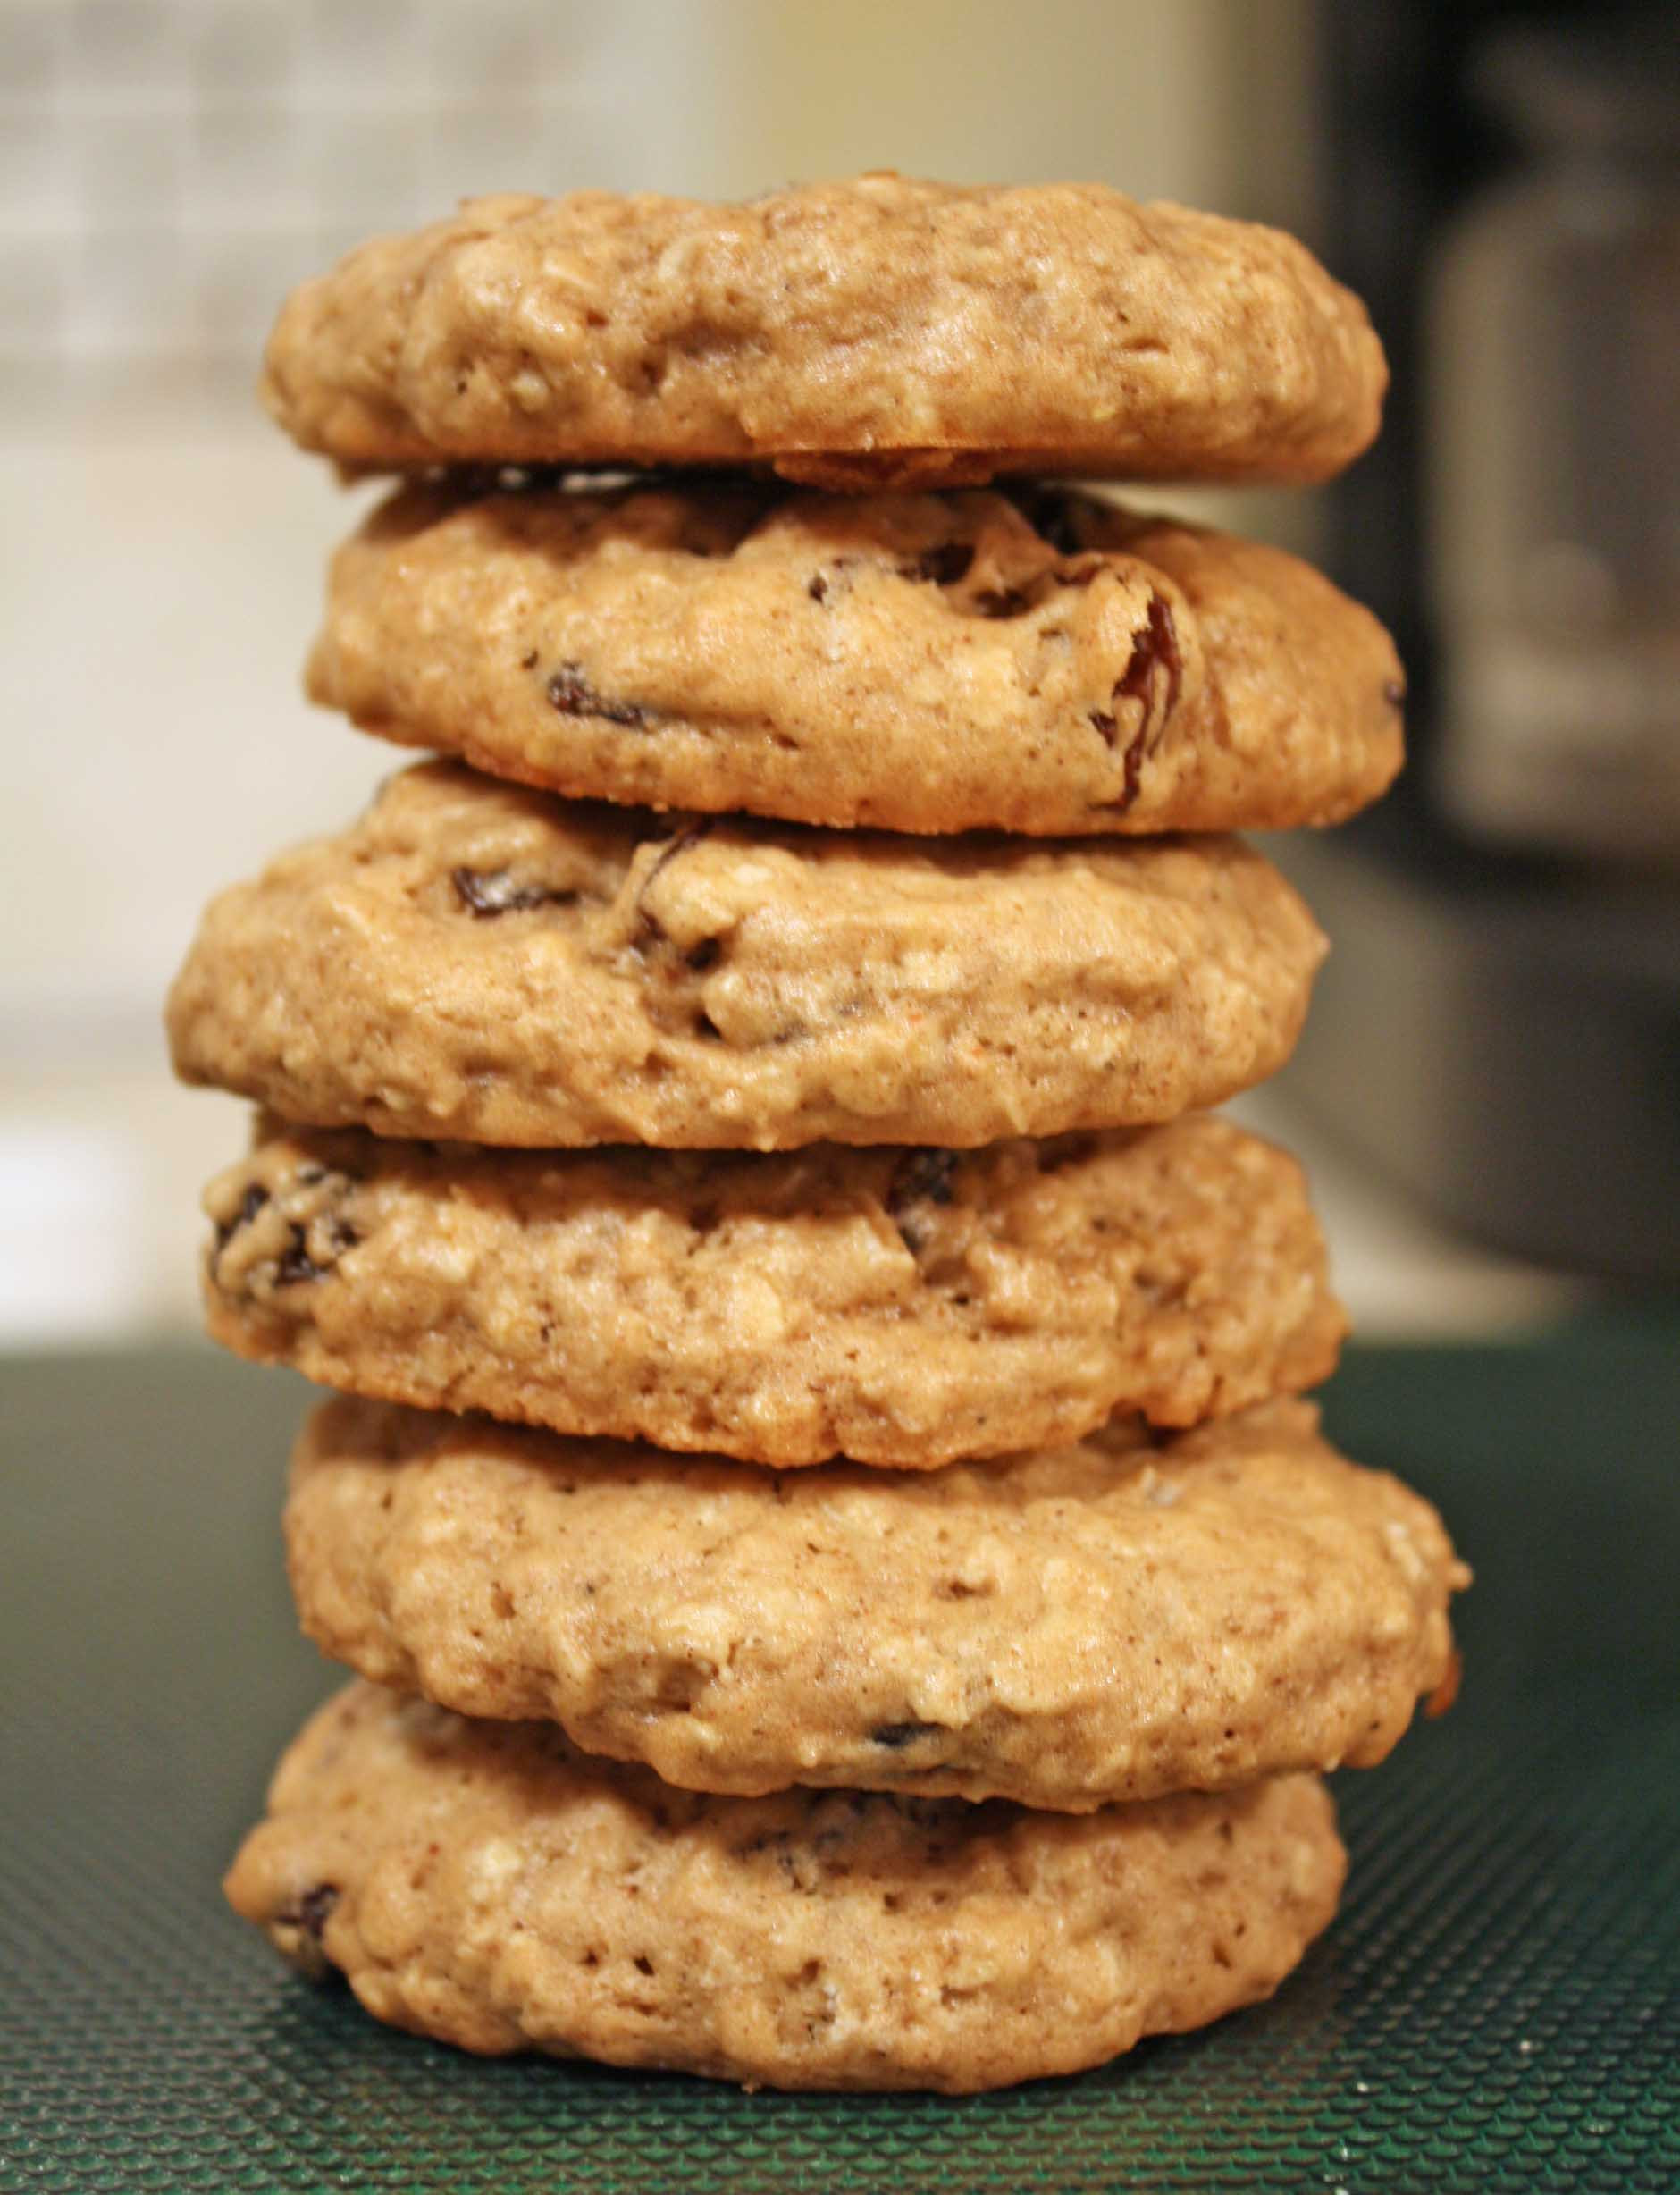 Chewy Oatmeal Cookies Recipe  Rosemary Scented Butternut Squash Risotto and Oatmeal